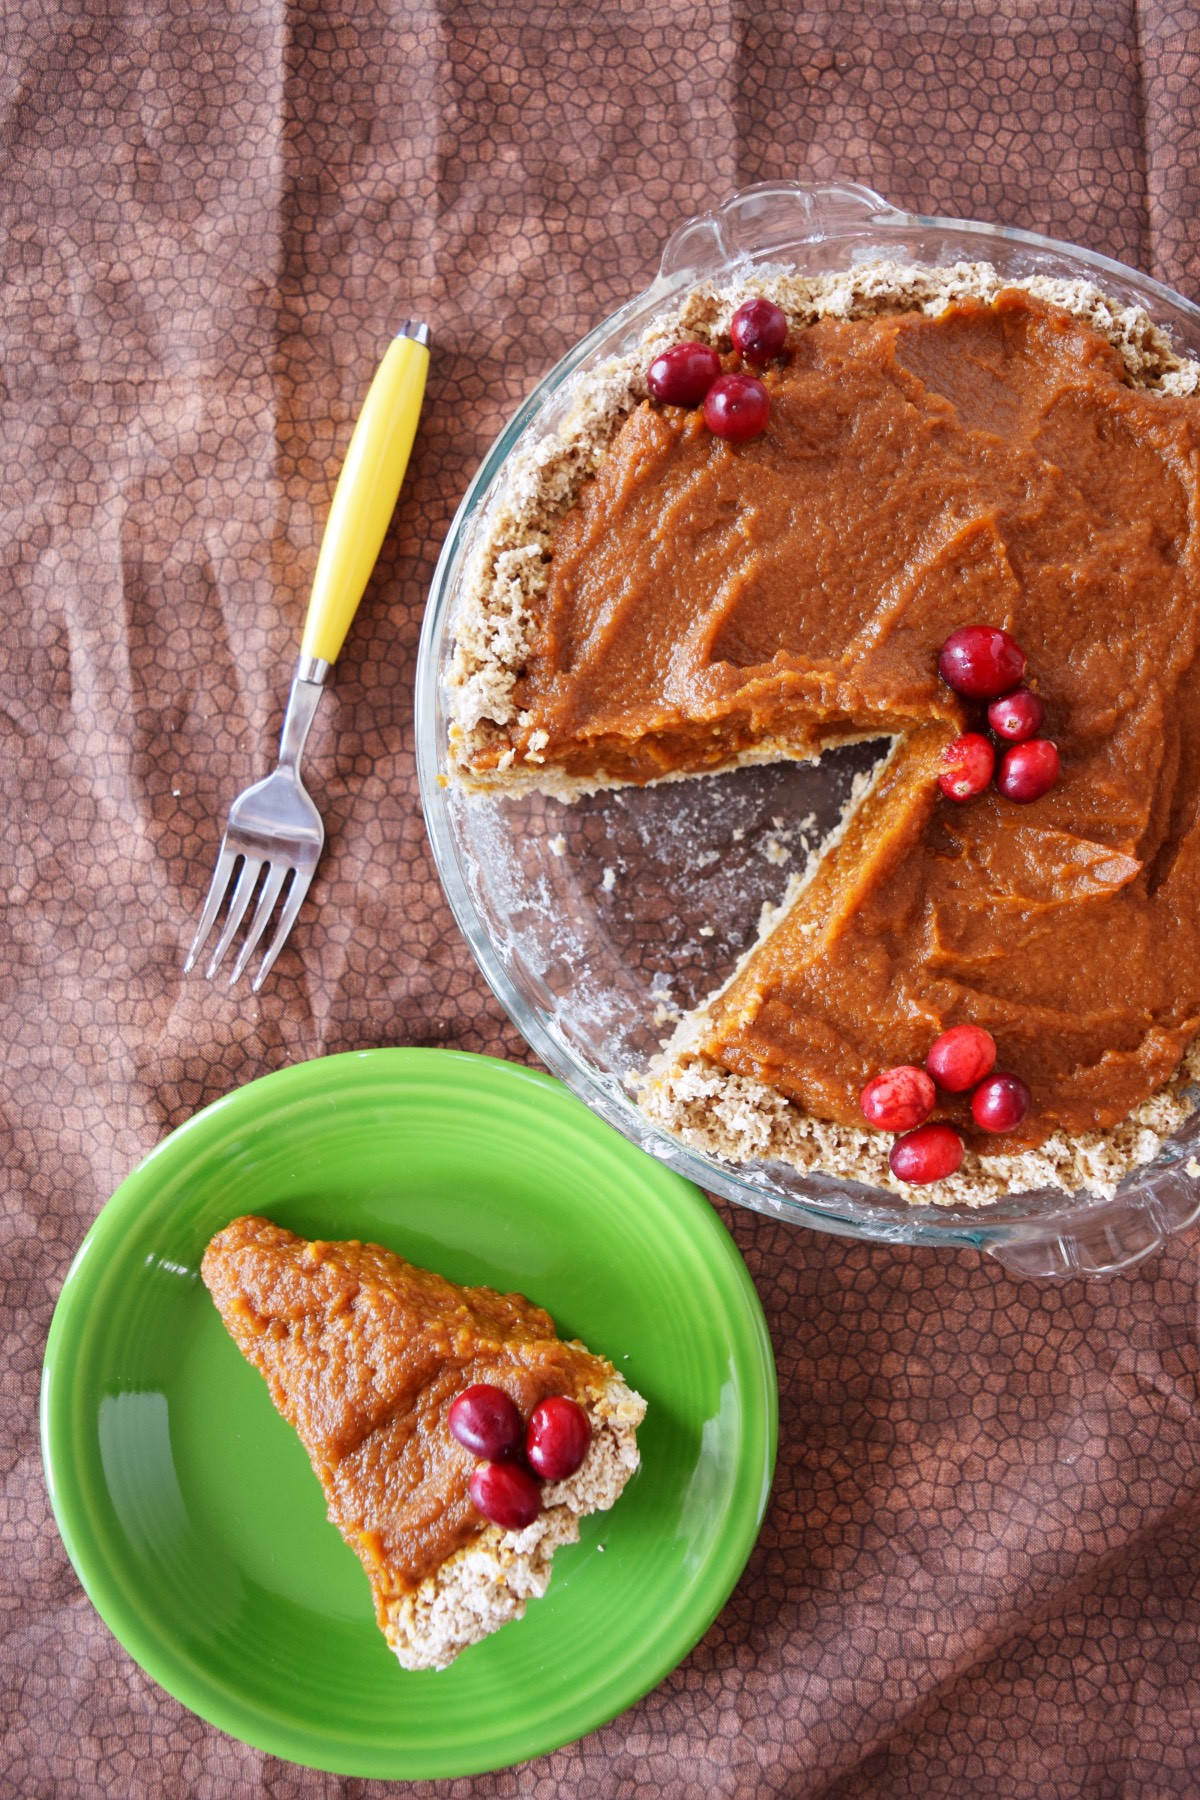 Healthy Vegan Pumpkin Pie  Vegan Pumpkin Pie Beaming Banana